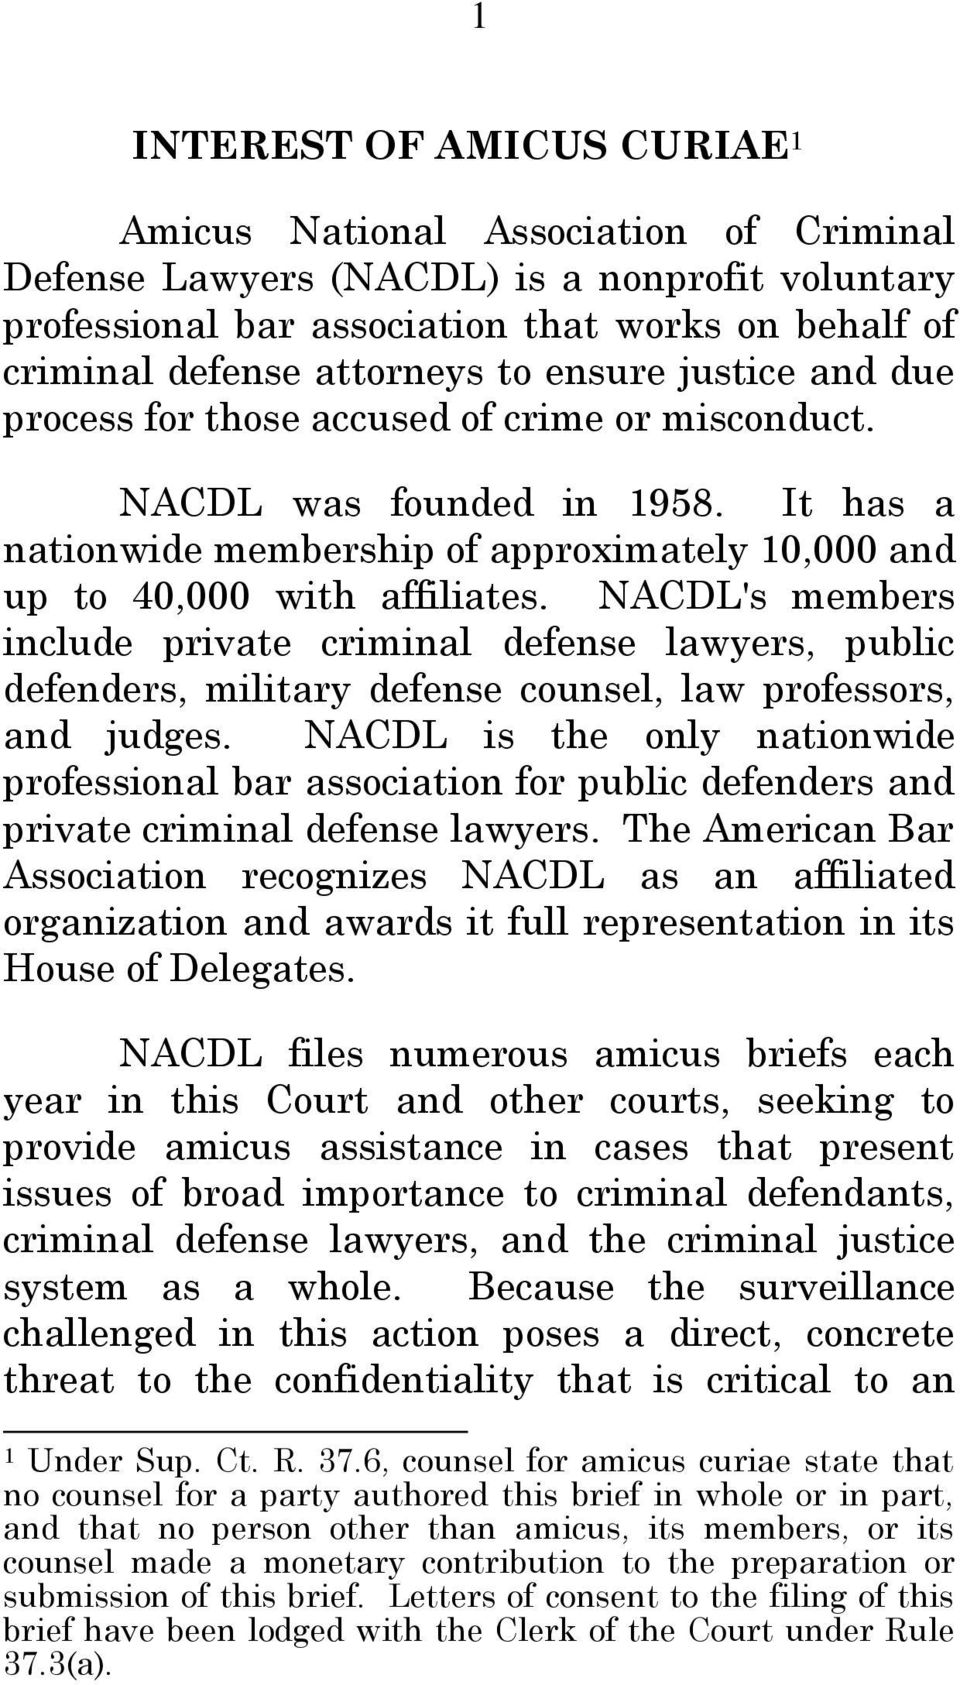 NACDL's members include private criminal defense lawyers, public defenders, military defense counsel, law professors, and judges.